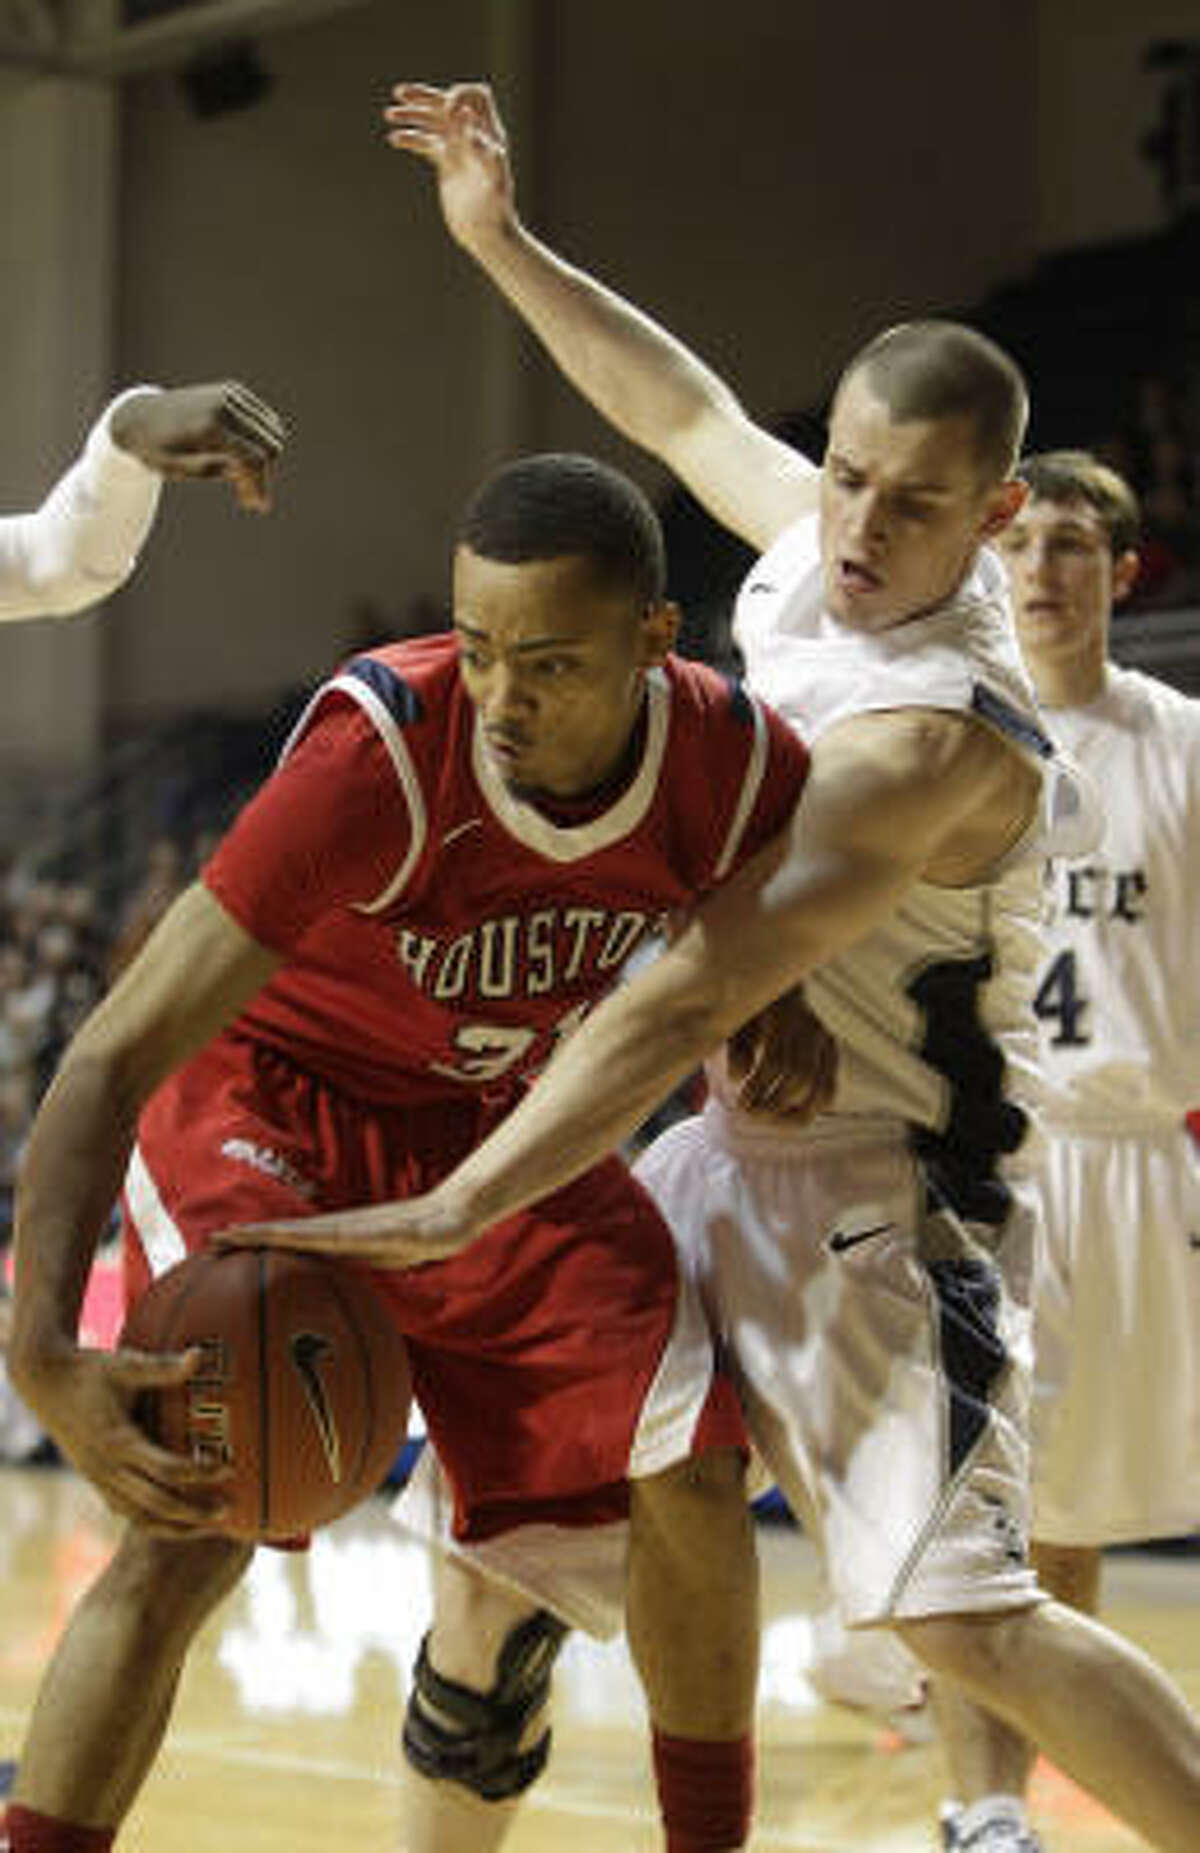 Houston guard Adam Brown (31) battles with Rice guard Cory Pflieger (32) for the ball.